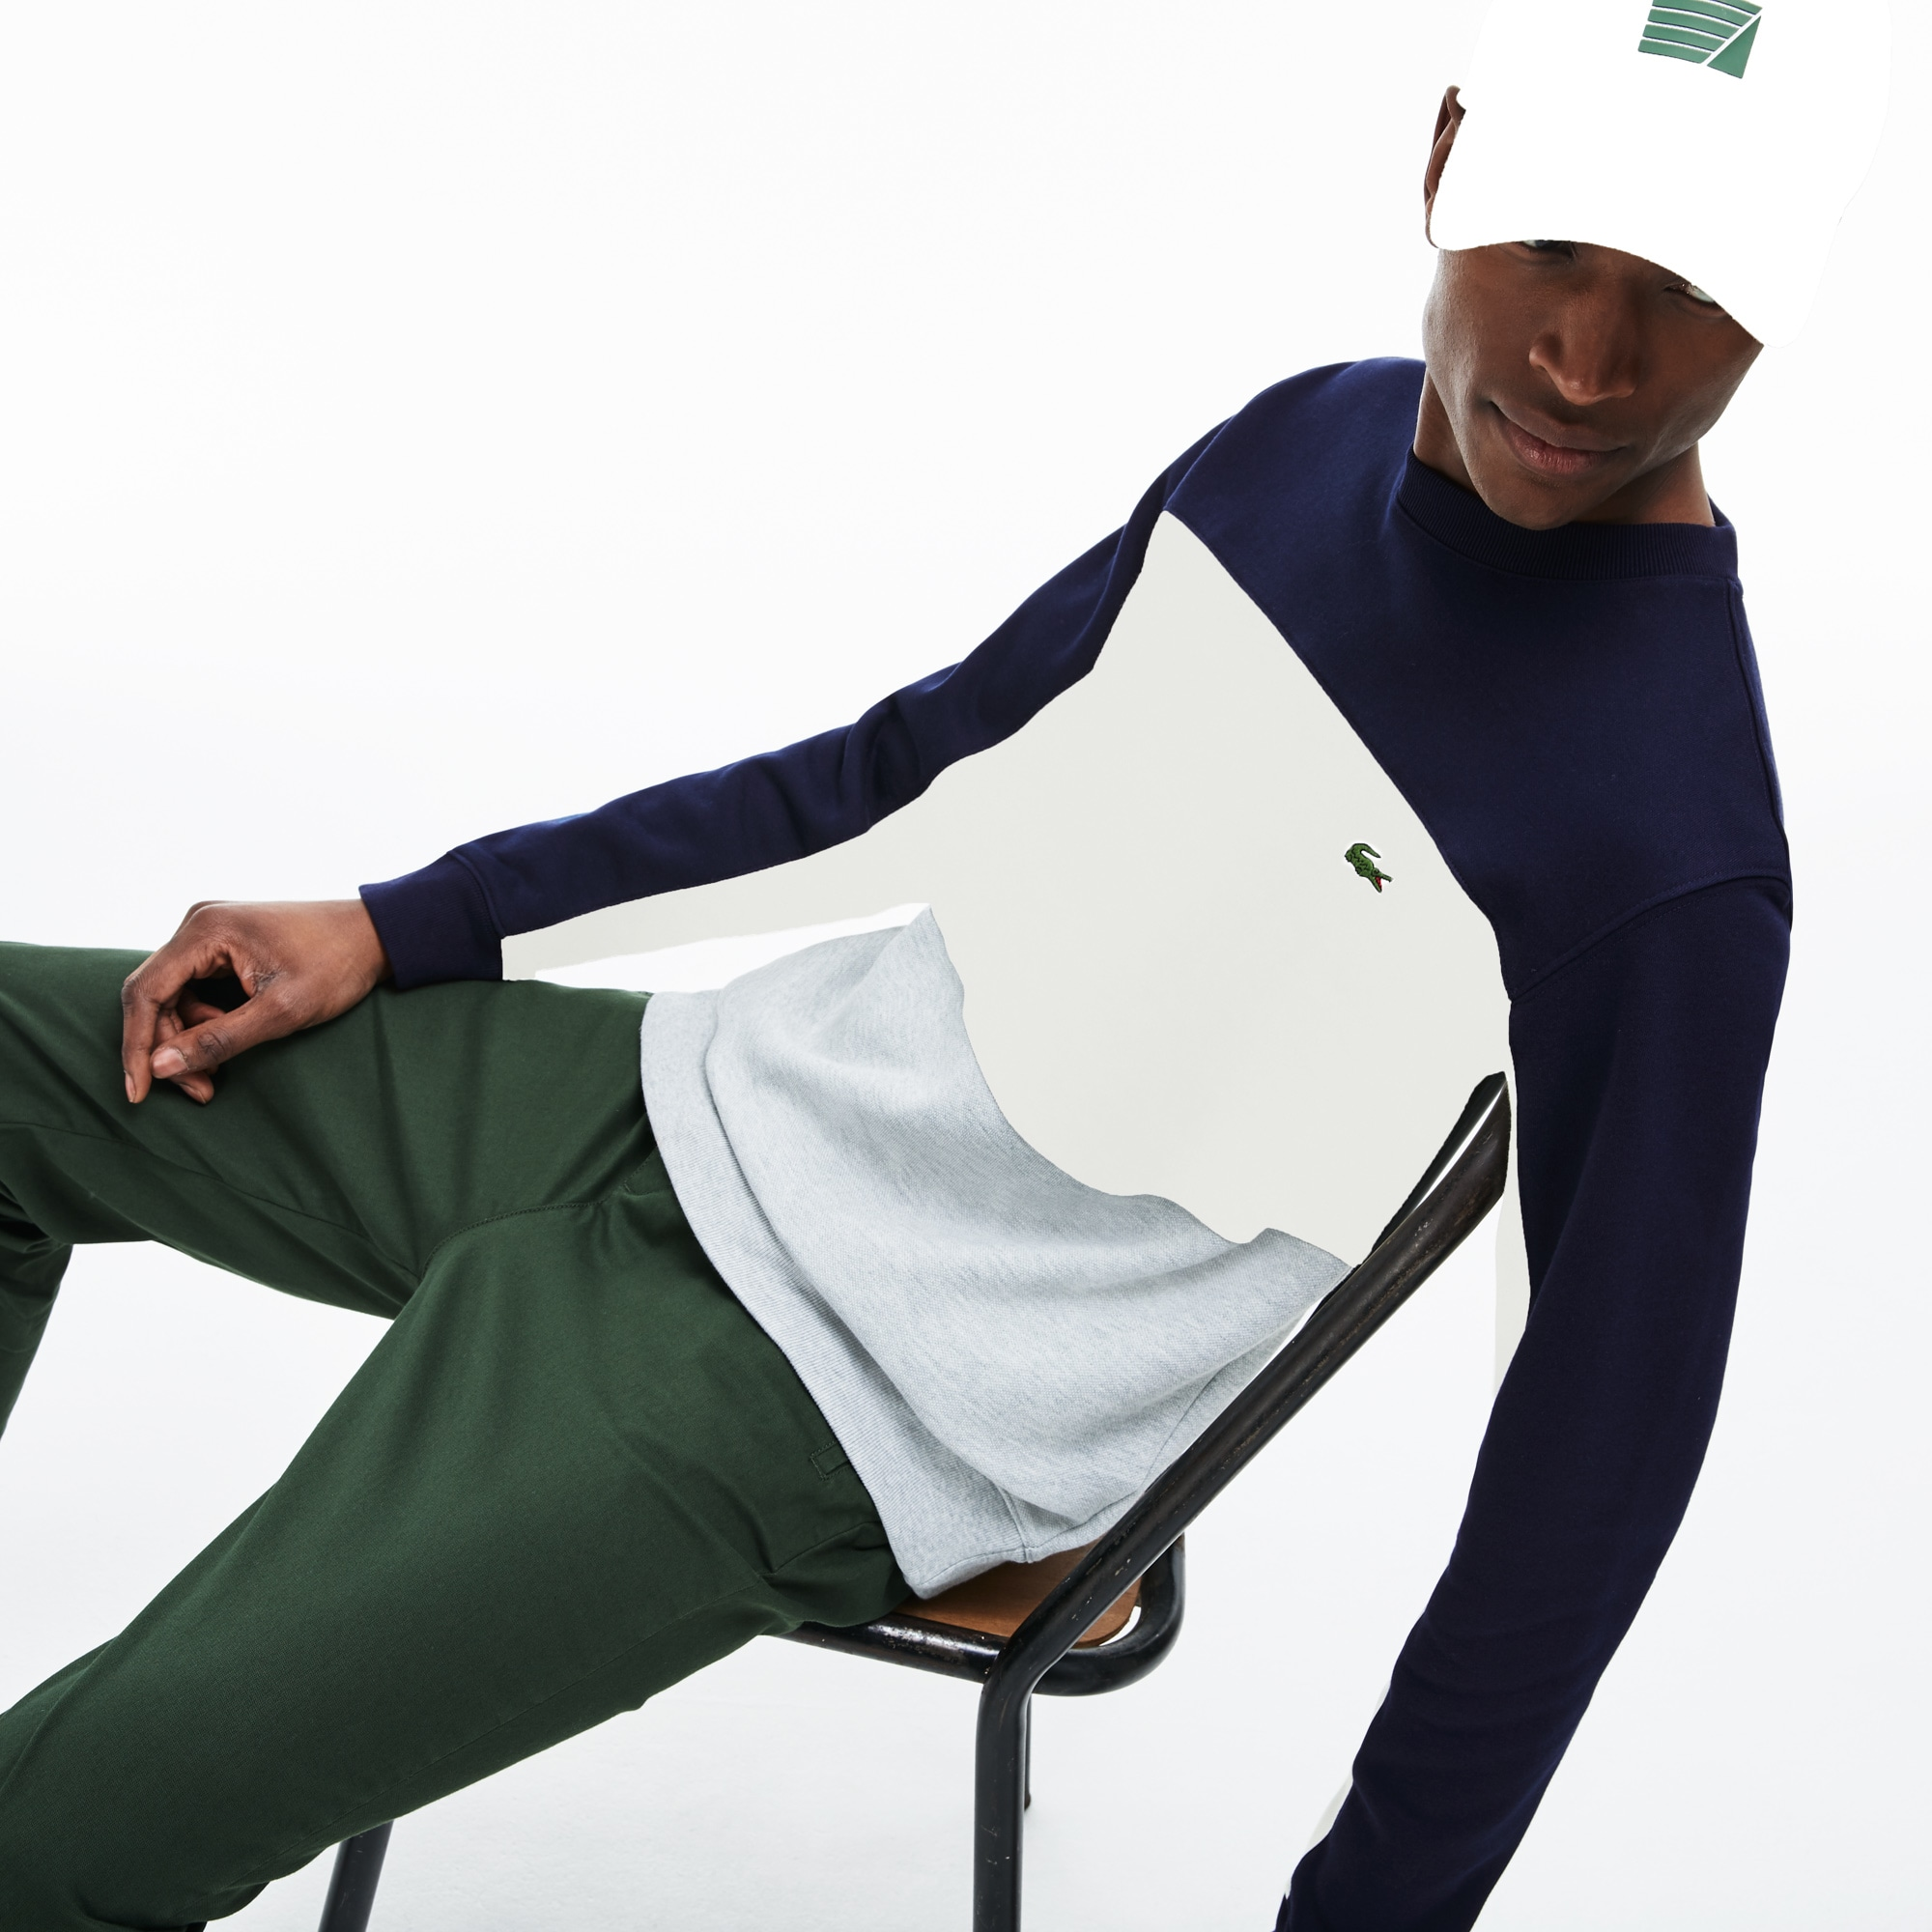 Été Printemps Nouvelle Lacoste Collection Nouvelle Collection OxwpwqI7a